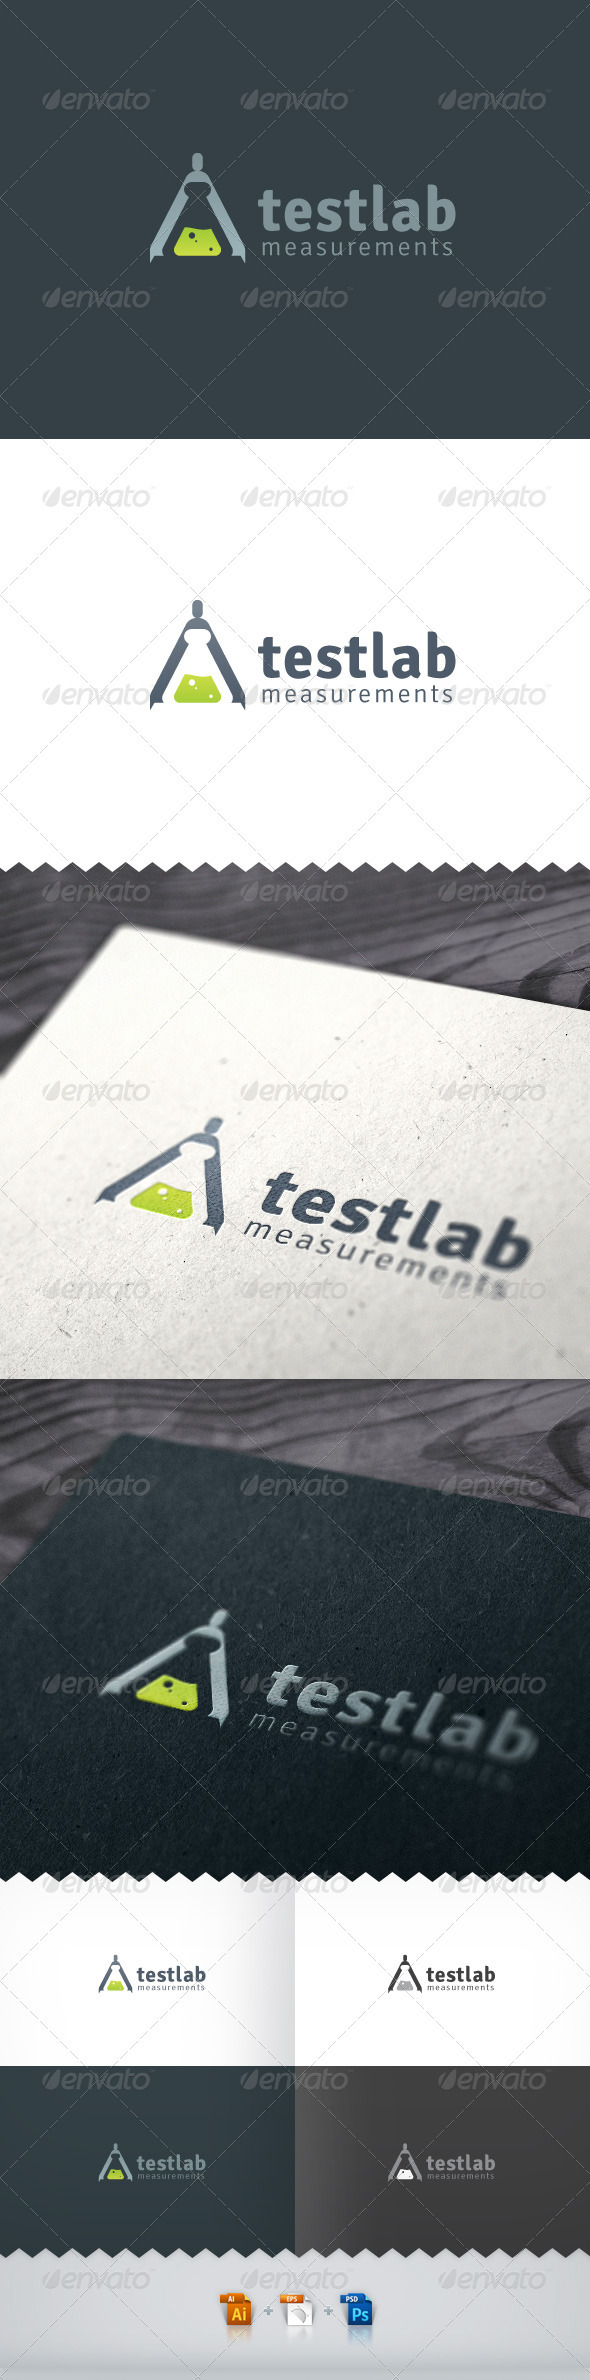 Test Lab Measurements Logo - Objects Logo Templates